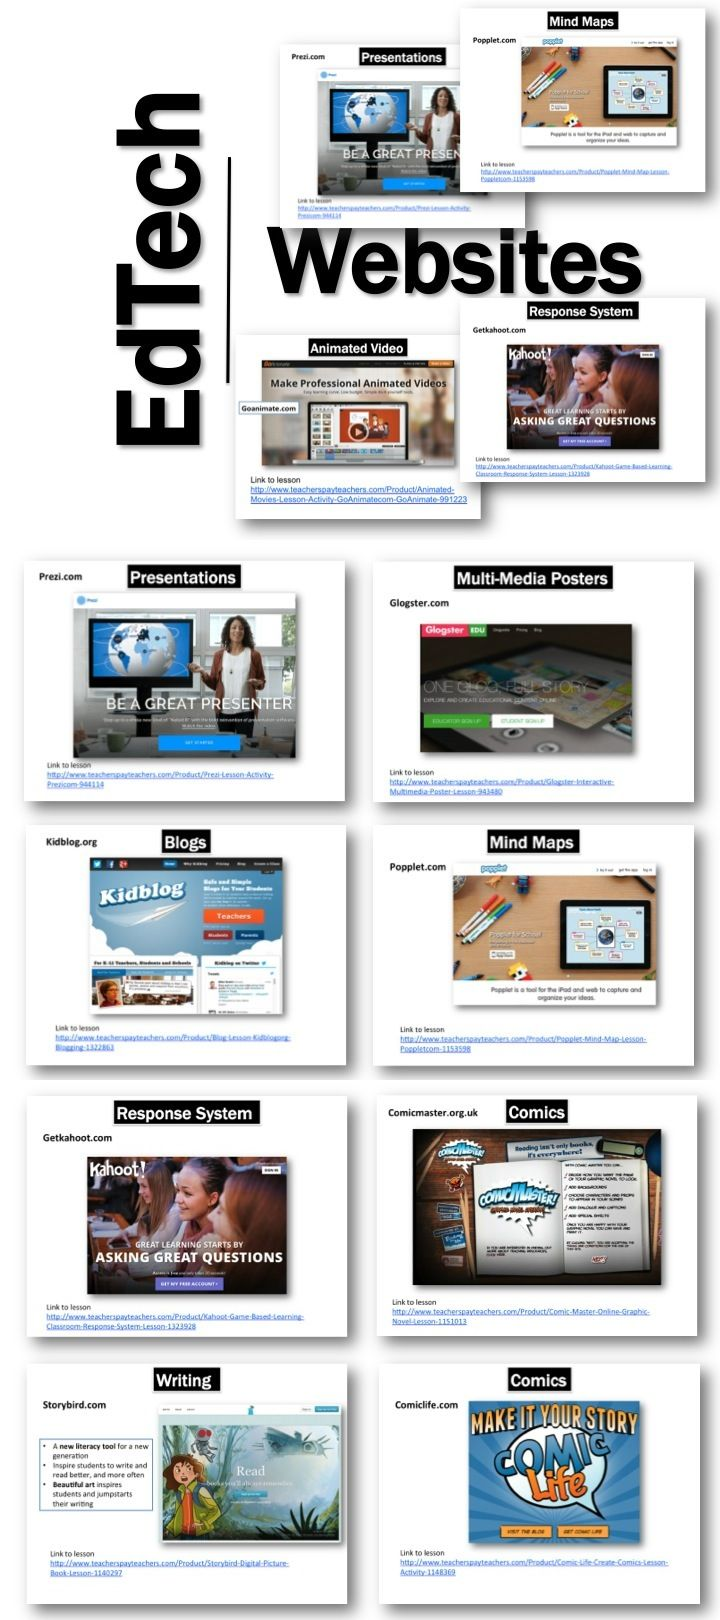 best ideas about great websites arc notebook links to lessons for each website topics prezi haiku deck posters glogster kidblog maps popplet slatebox response system kahoot